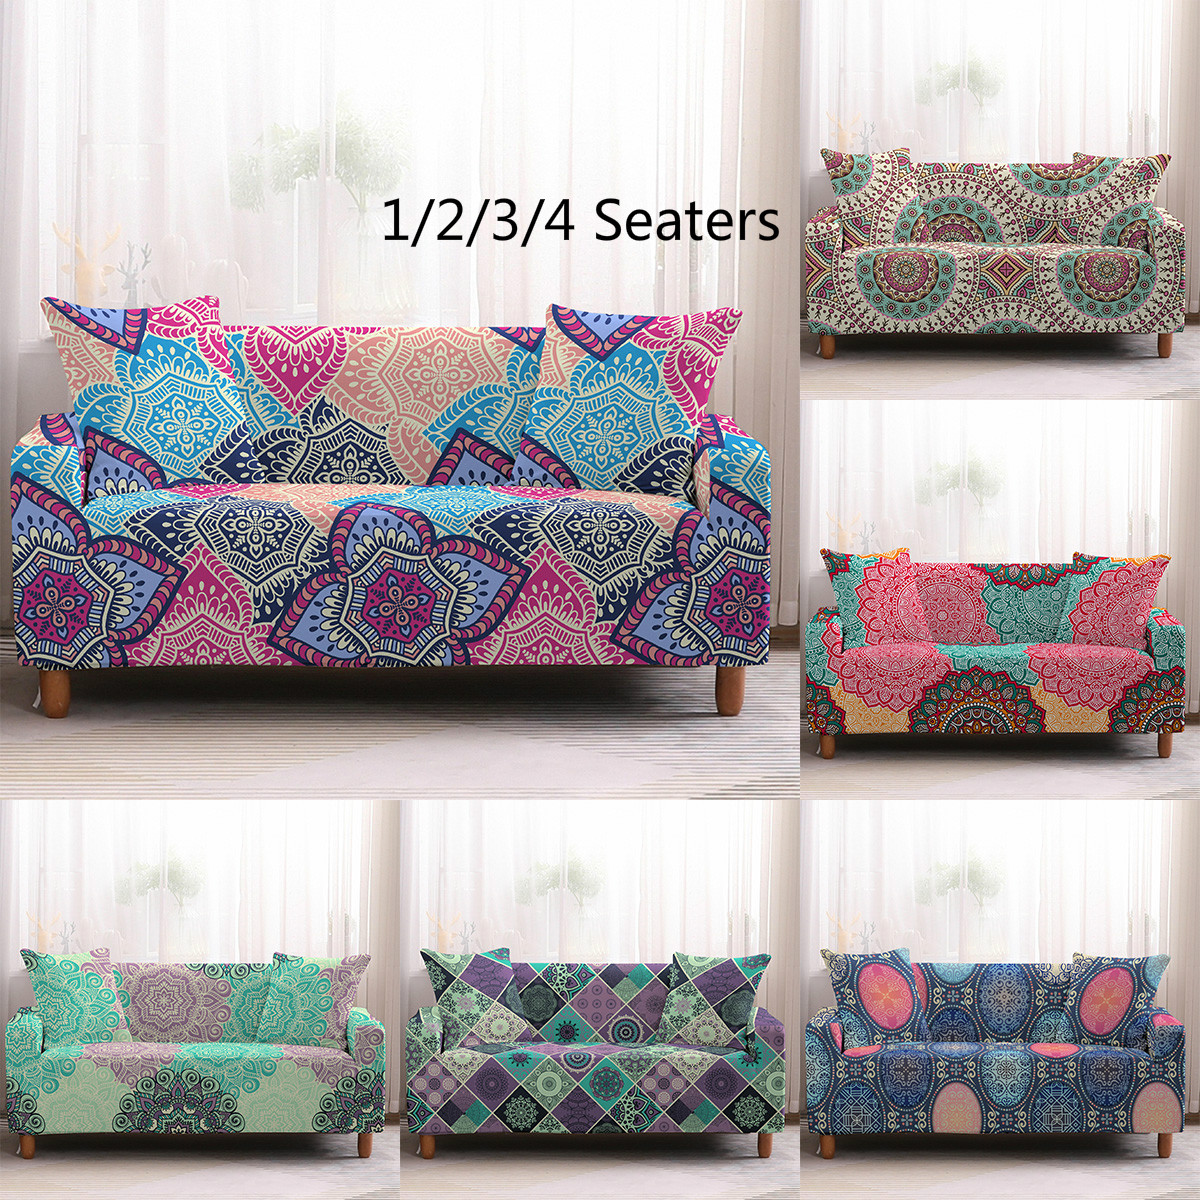 Bohemia Pattern Slipcovers Sofa Cover sofa towel Living Room Furniture Protective Armchair couches sofa 1-4 seater(China)